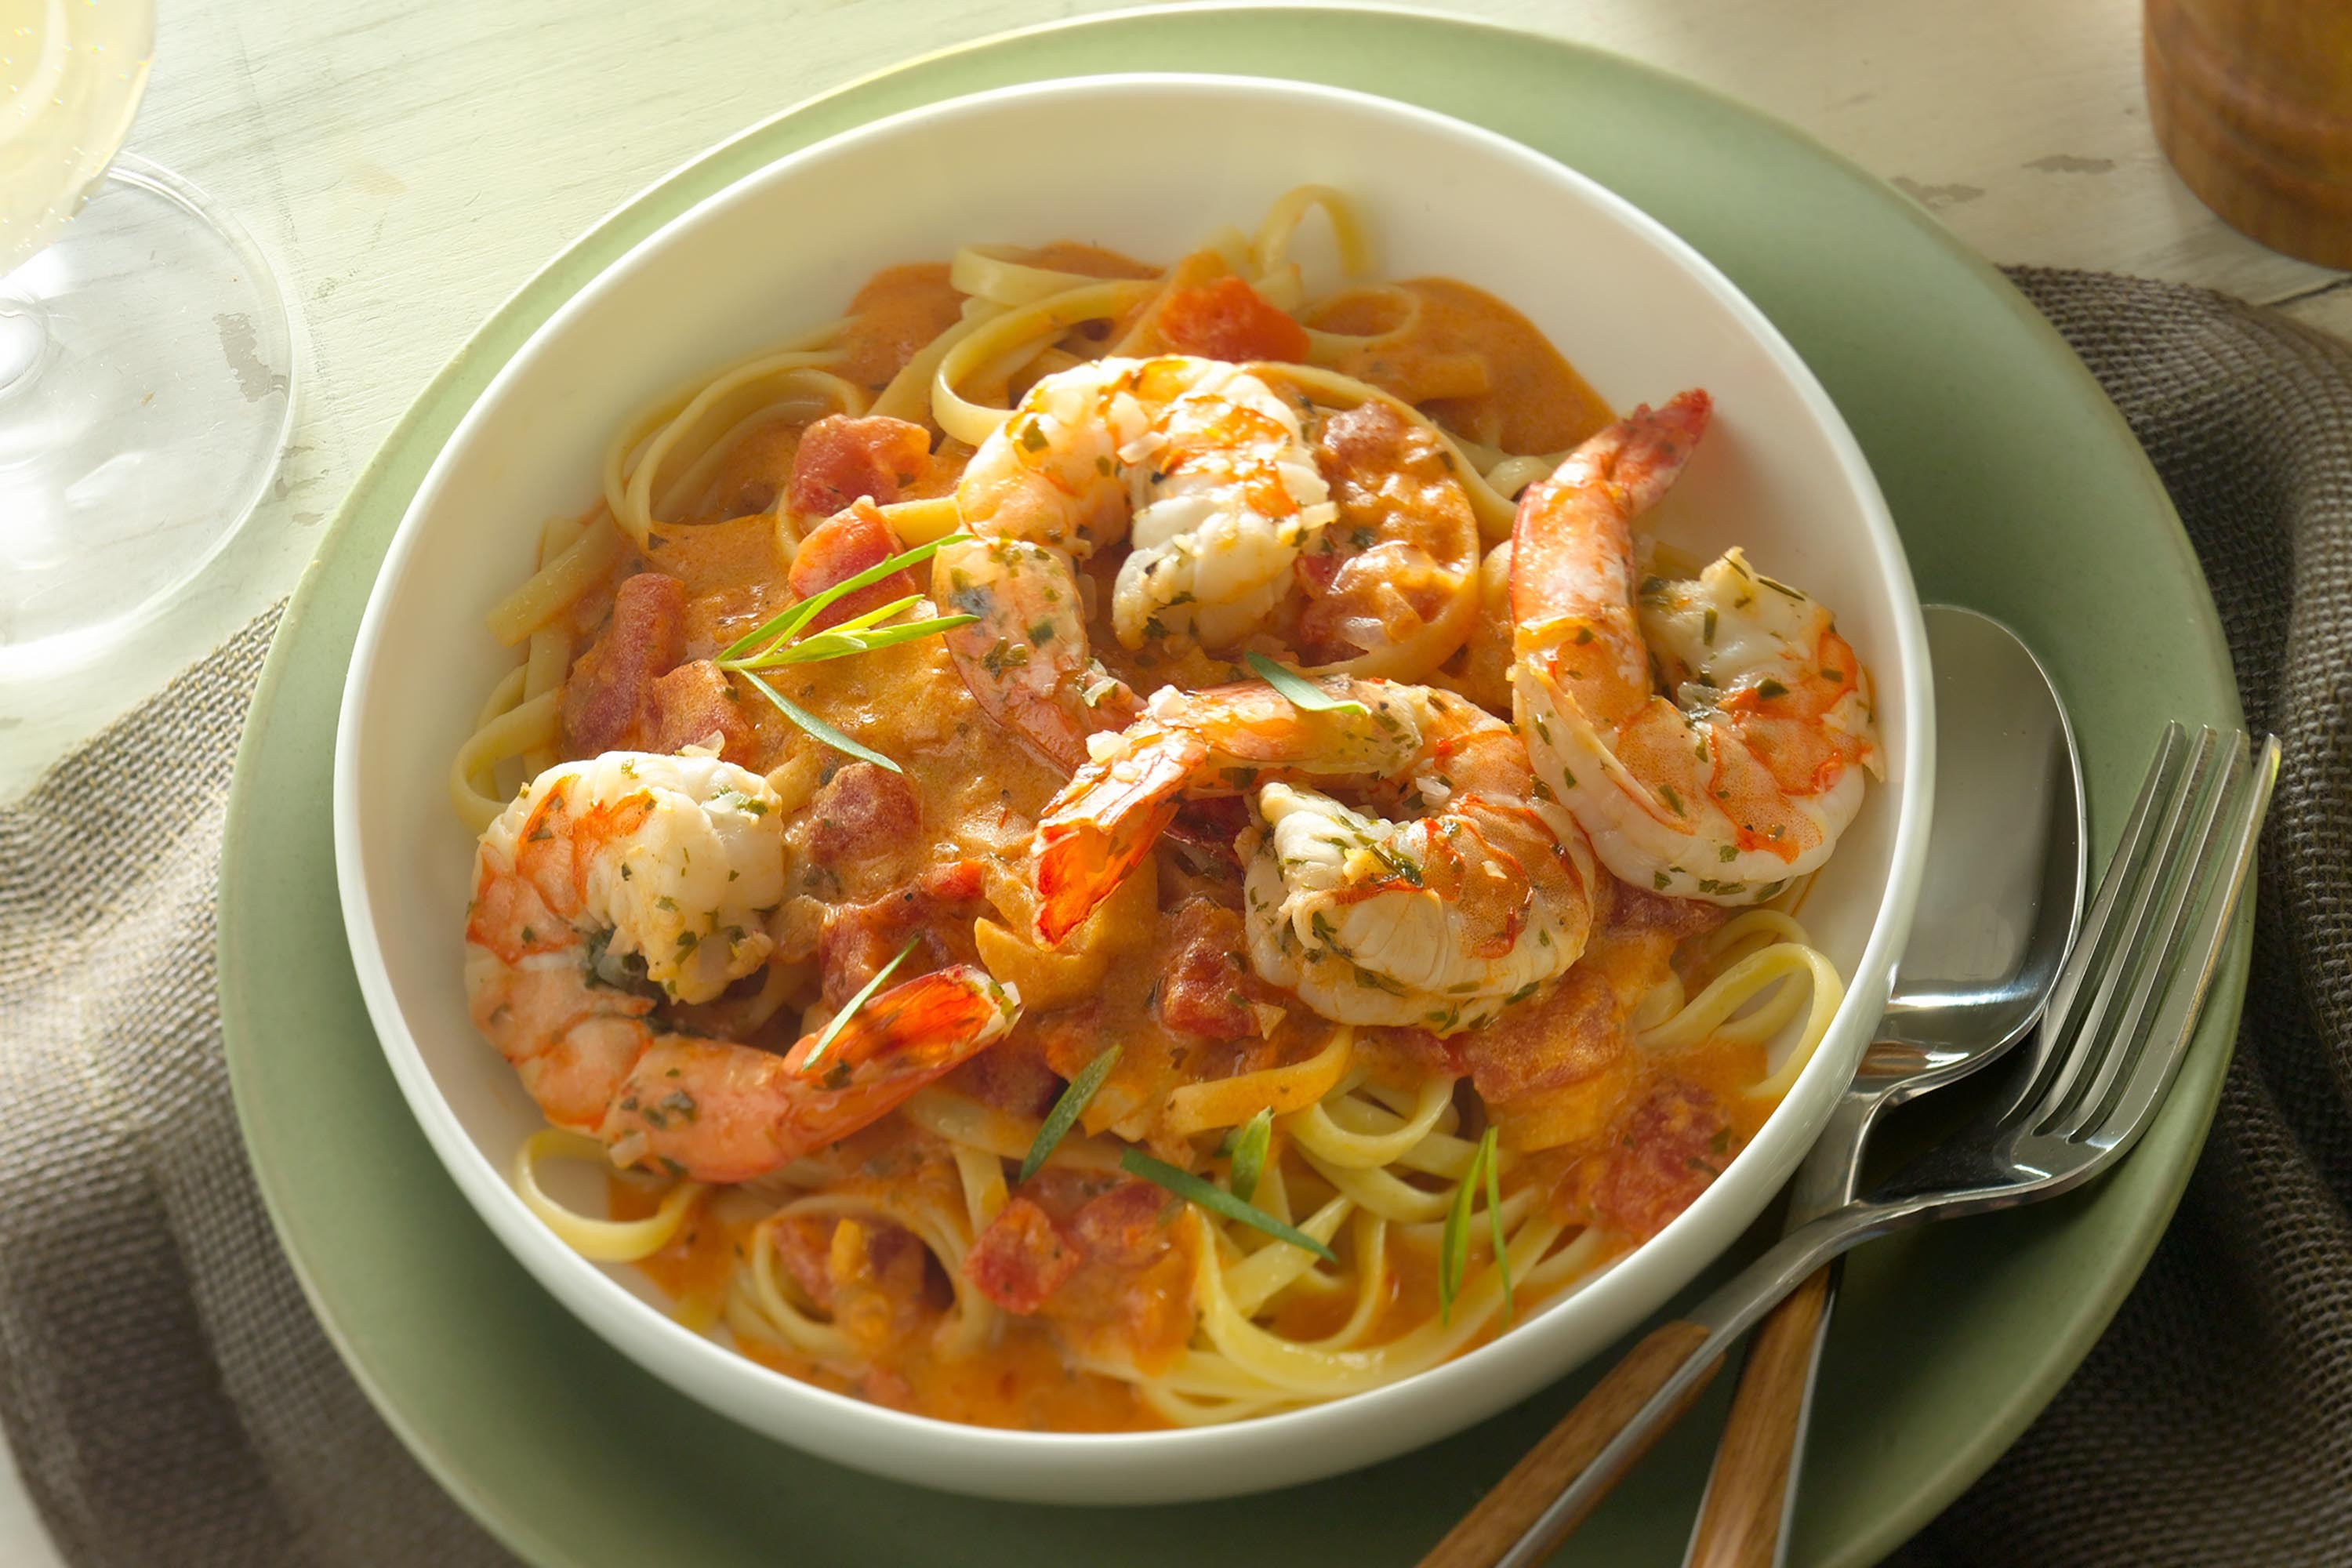 Zesty Shrimp Pasta with Garlic